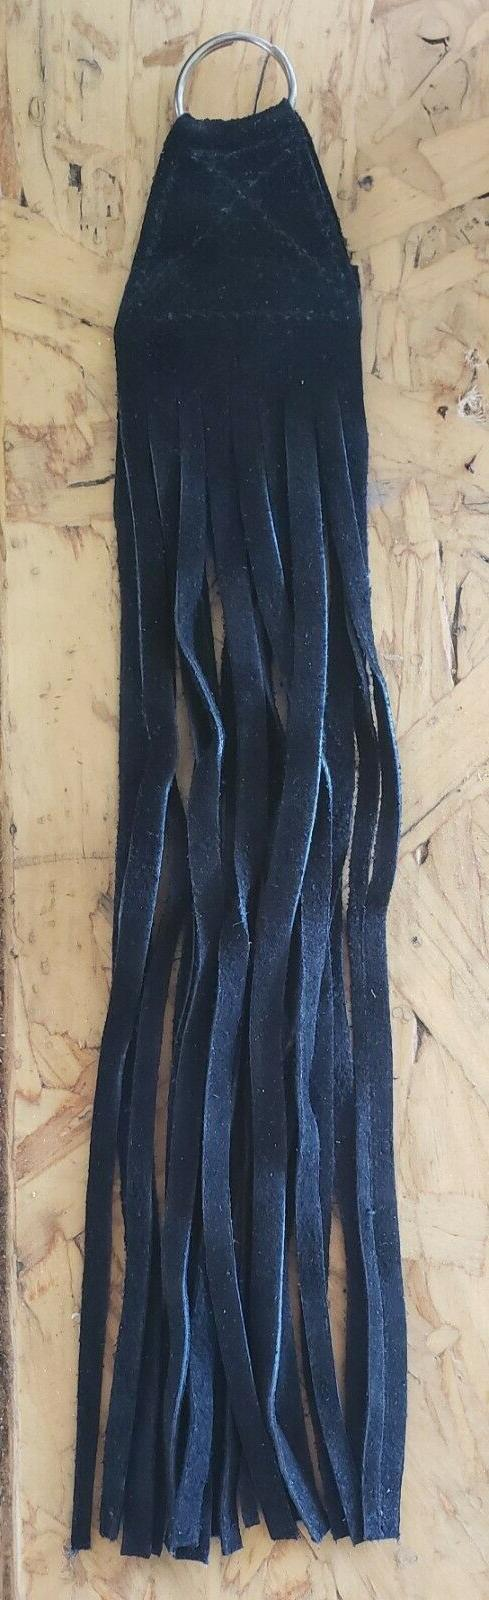 10 inch black leather fringe keychain